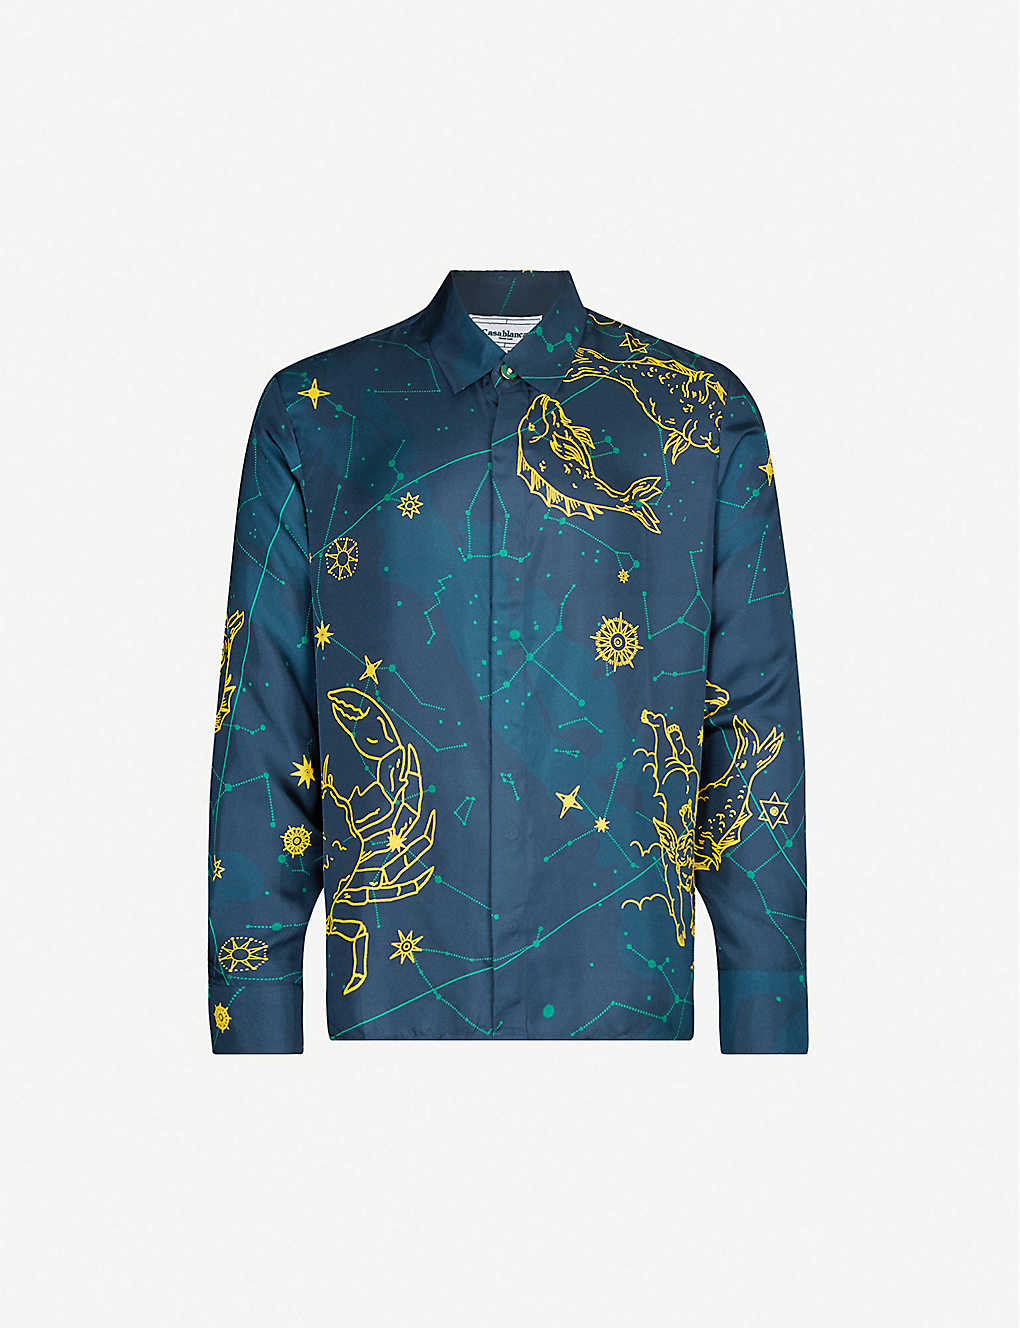 Casablanca shirt at Selfridges - £535 - Would look the business under the flashing lights of a night club